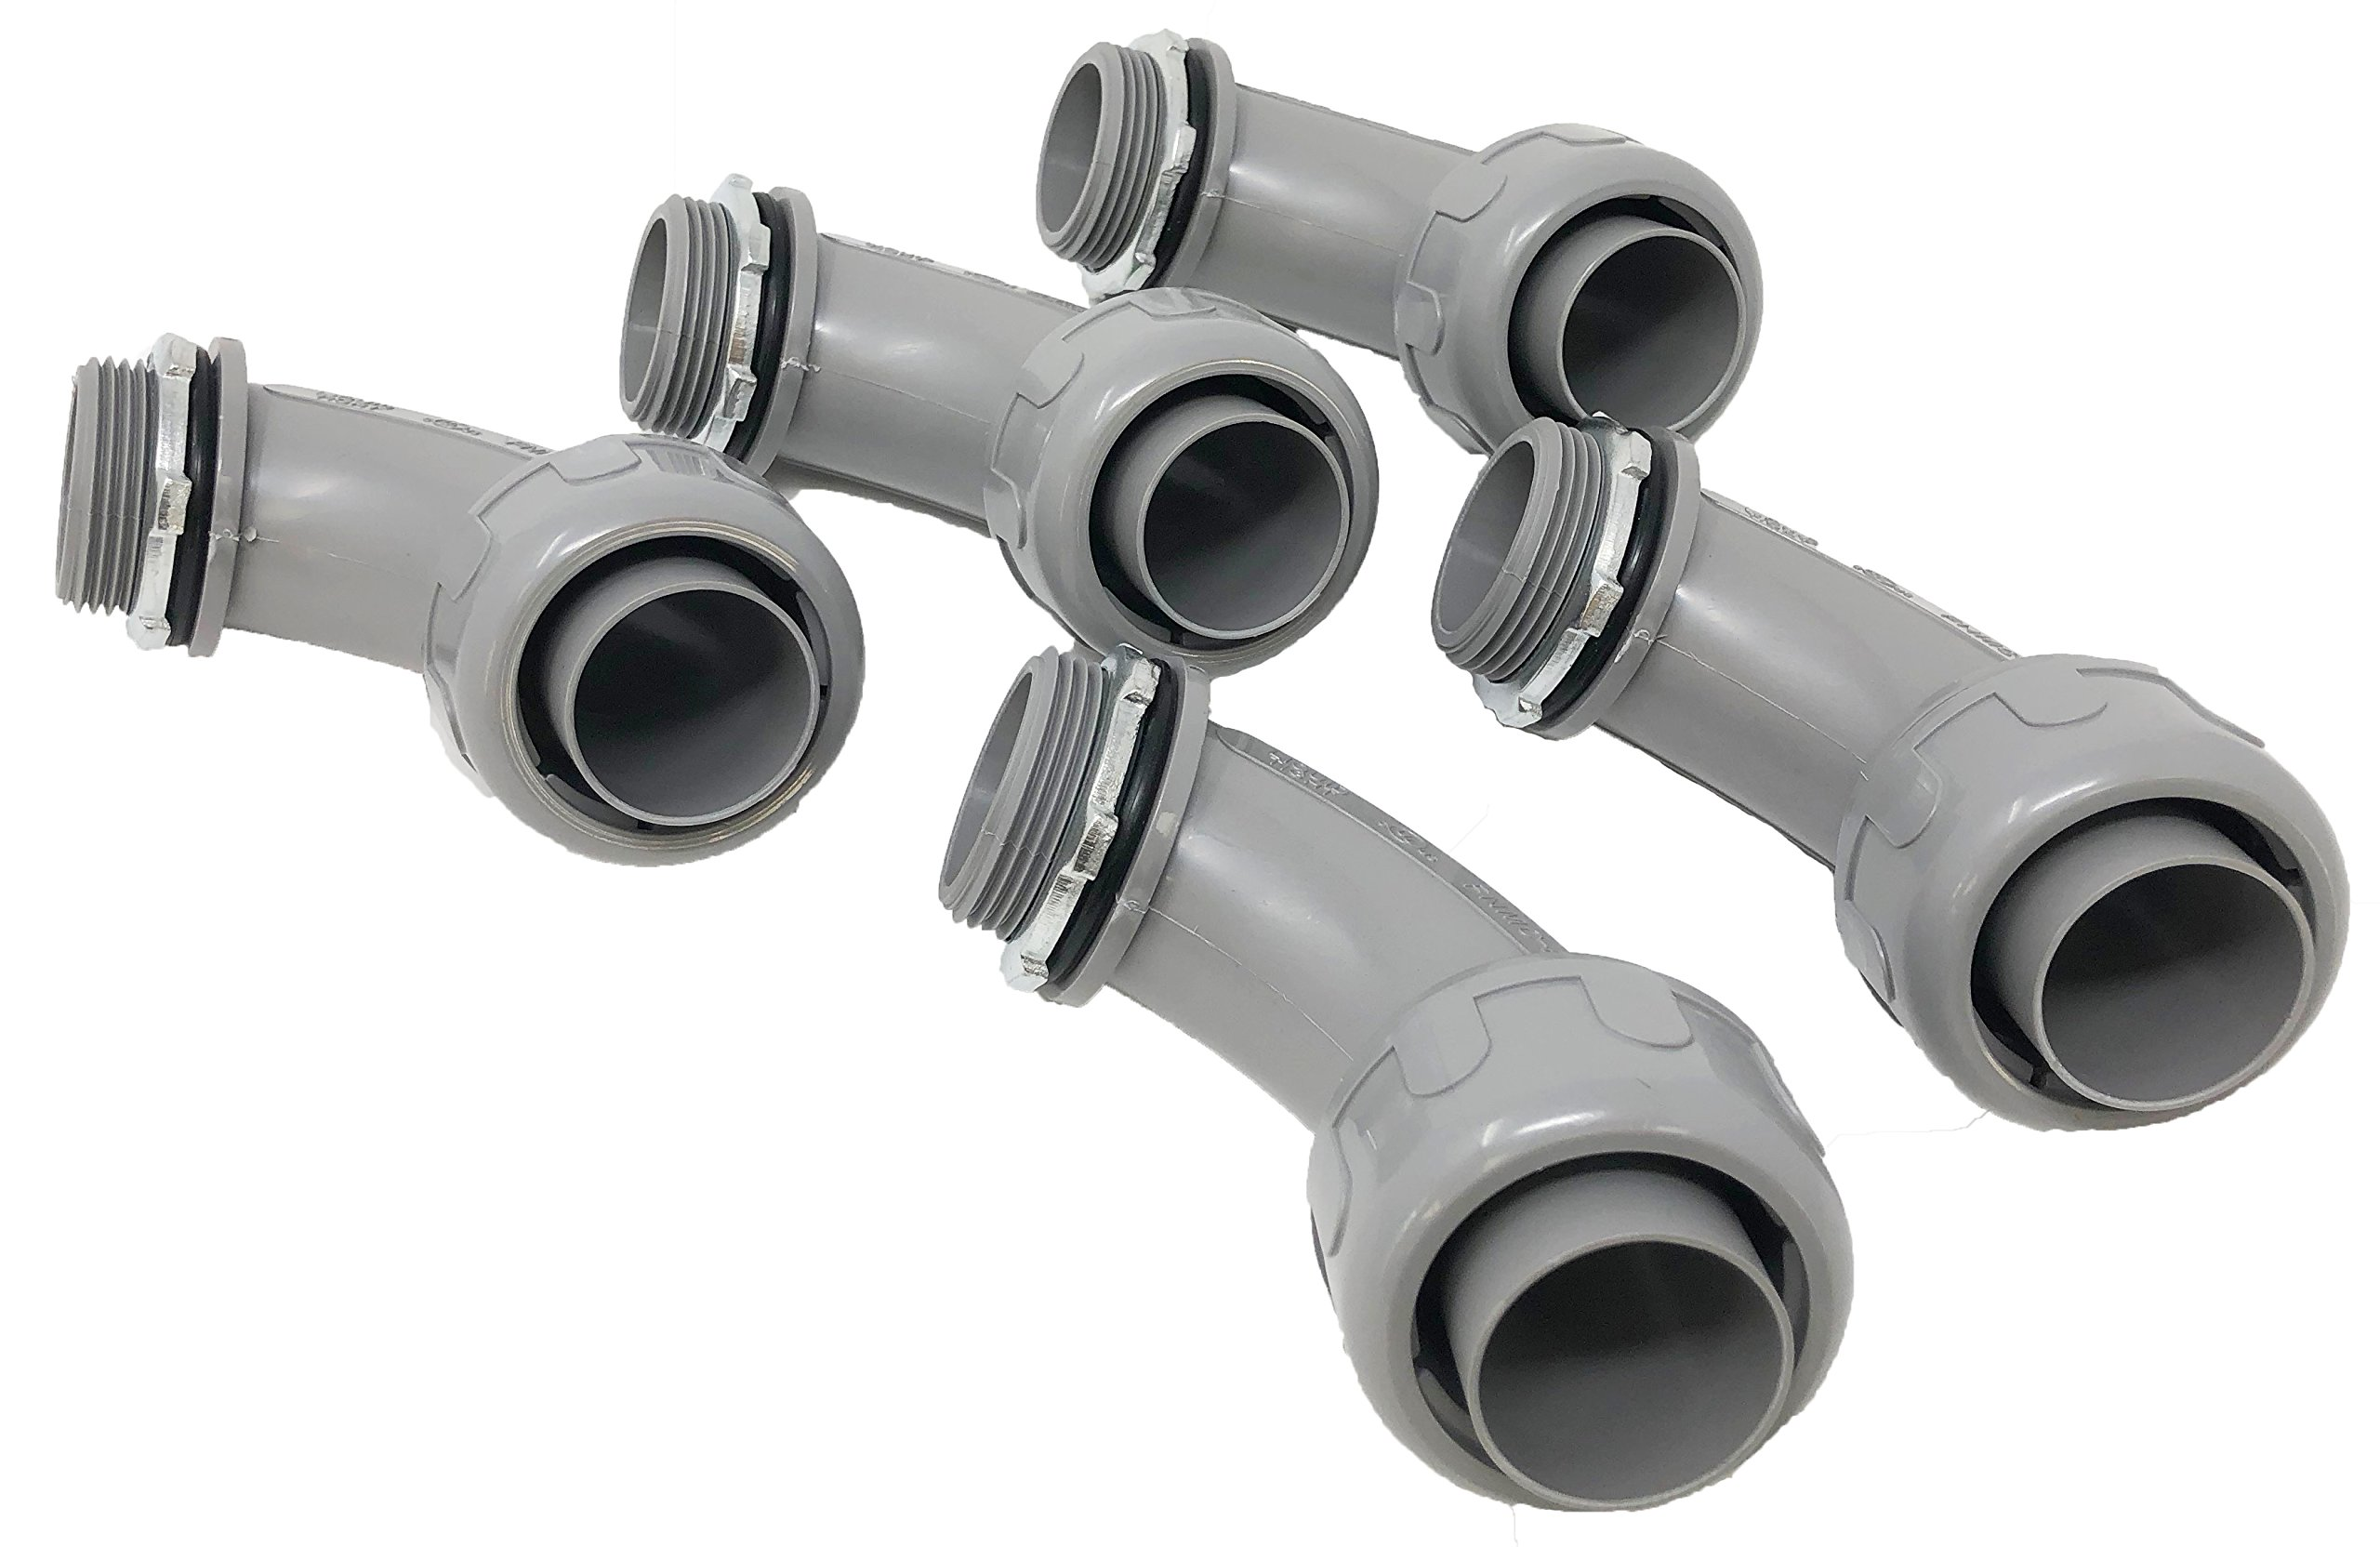 Sealproof 1-1/4-Inch 5 Pack Non-Metallic Liquid-Tight 90-Degree Conduit Connector Fitting, 1-1/4'' Dia 5-Pack